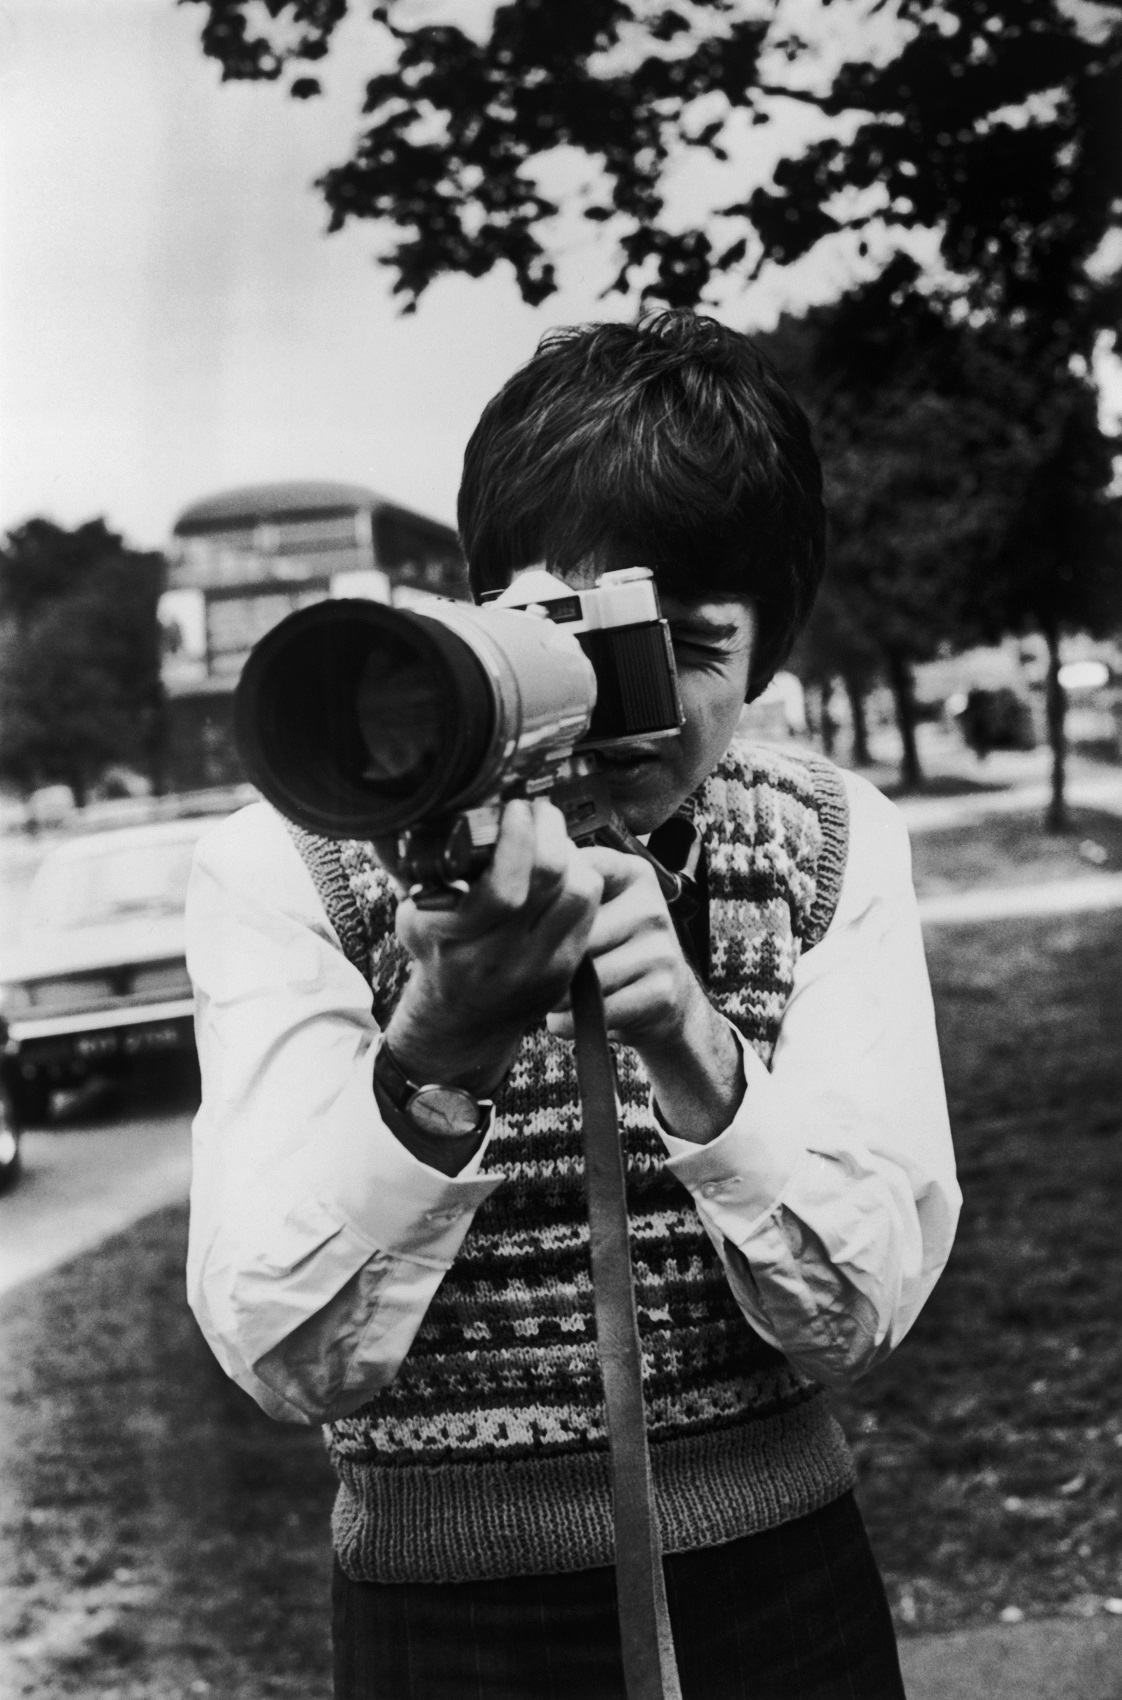 Paul McCartney takes some shots with a Russian Zenit Photo-Sniper camera outfit while waiting for the Magical Mystery Tour bus.